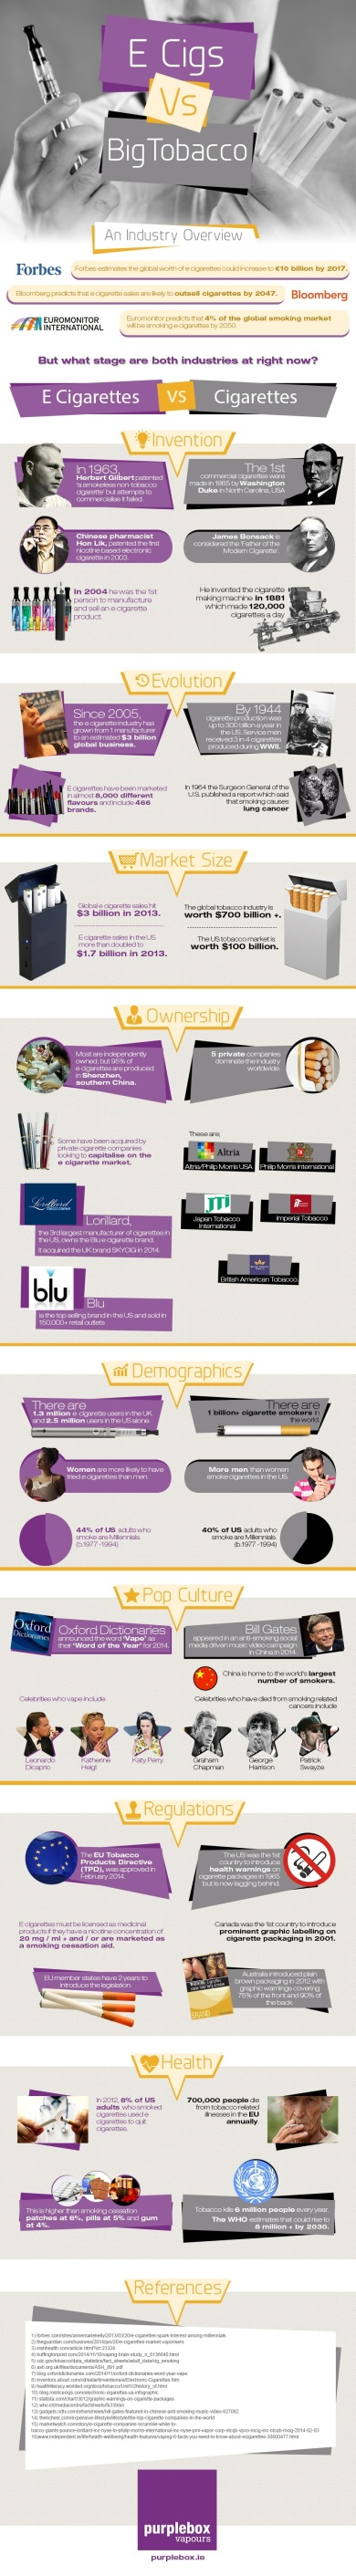 E-Cigs vs Big Tobacco Infographic